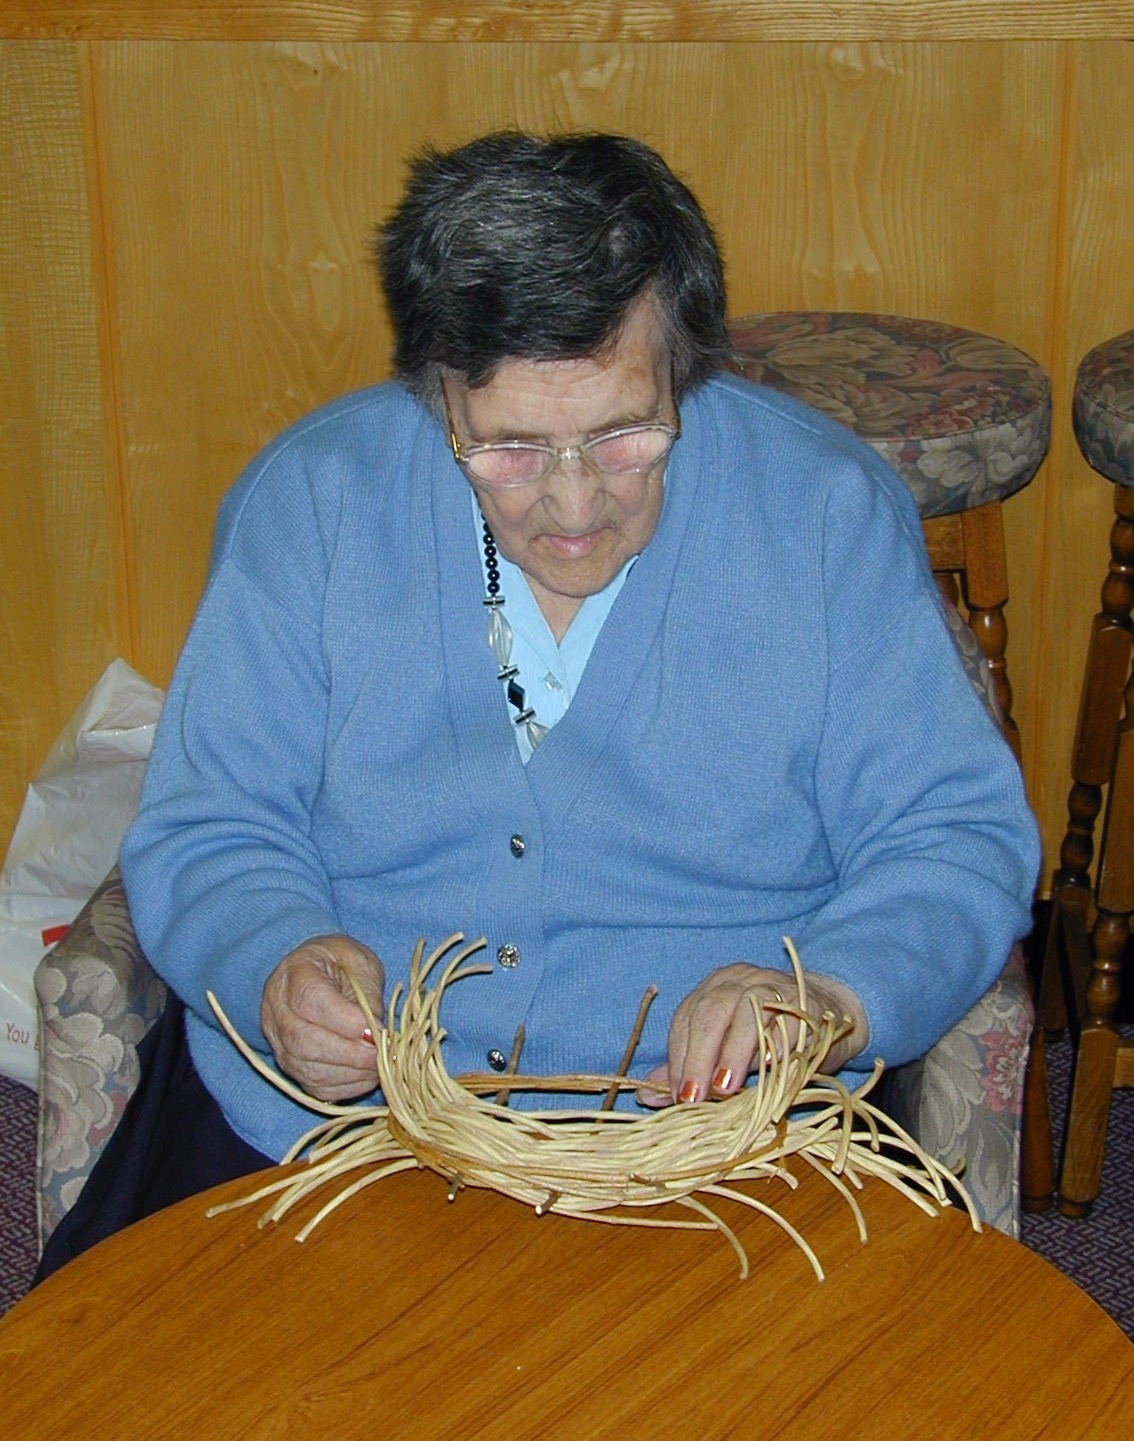 longlands care home, pitt rivers museum basketry project